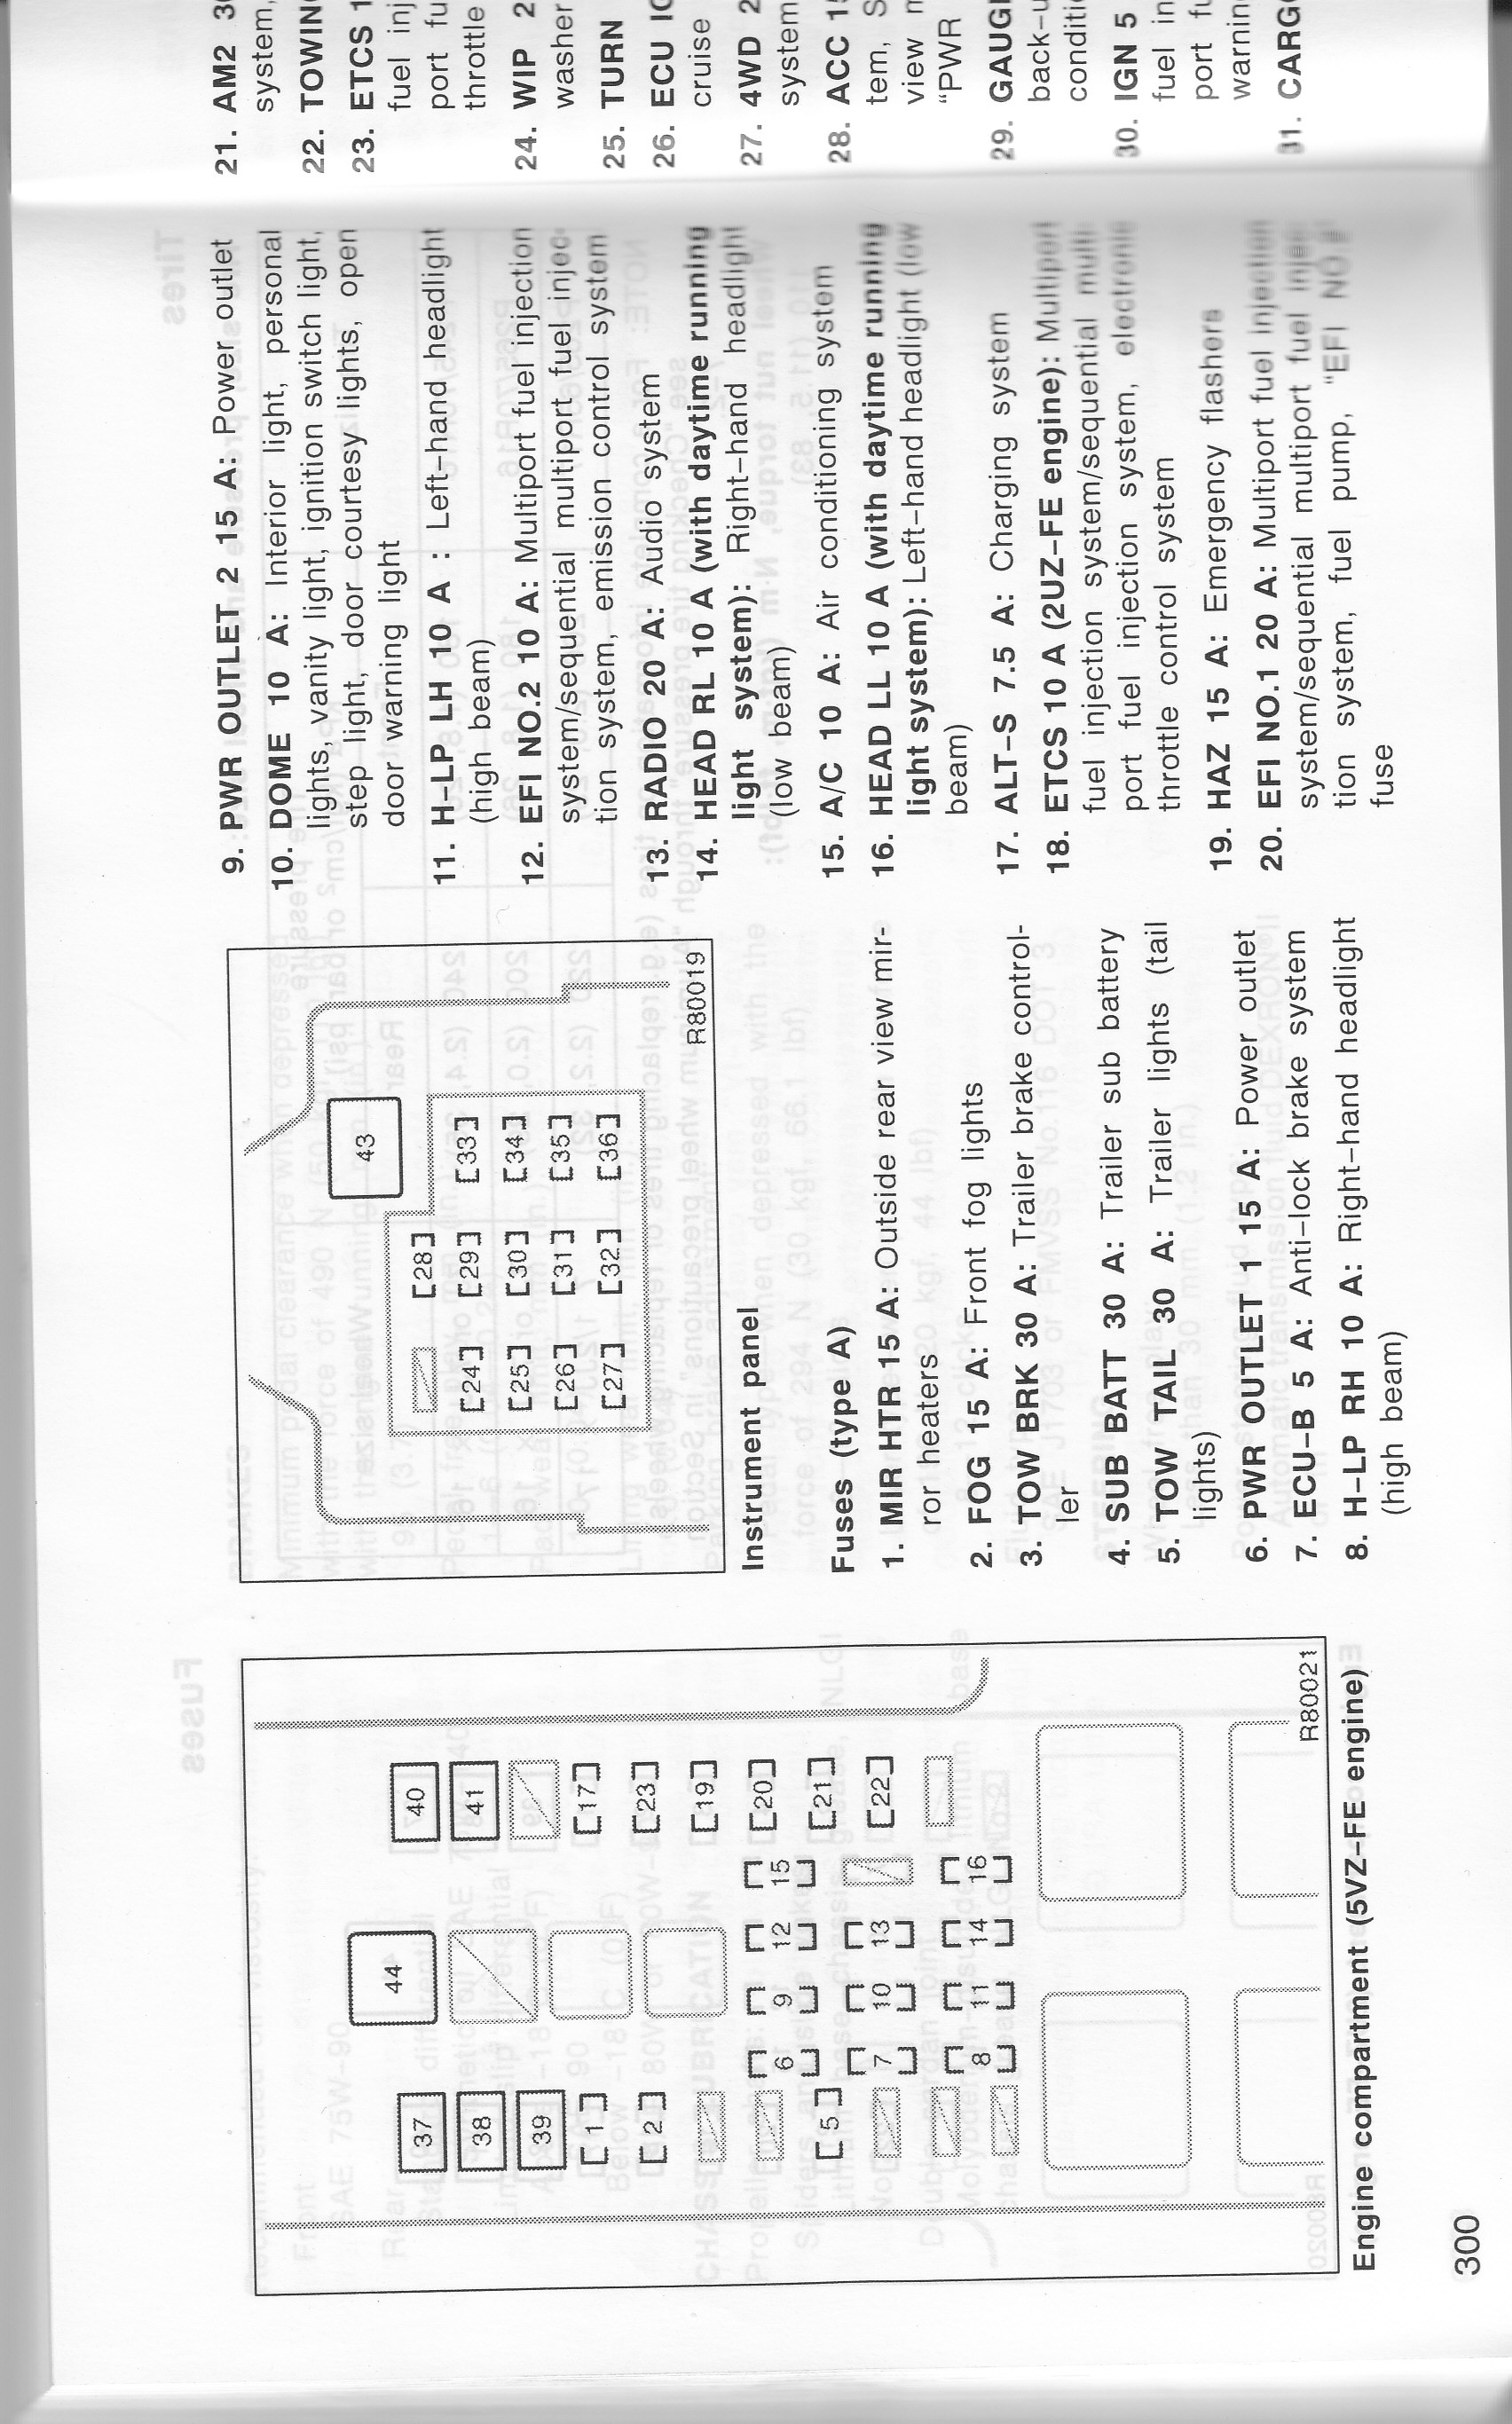 2010 tundra fuse diagram online circuit wiring diagram u2022 rh electrobuddha co uk 2010 toyota tundra fuse box location 2010 toyota tundra fuse location